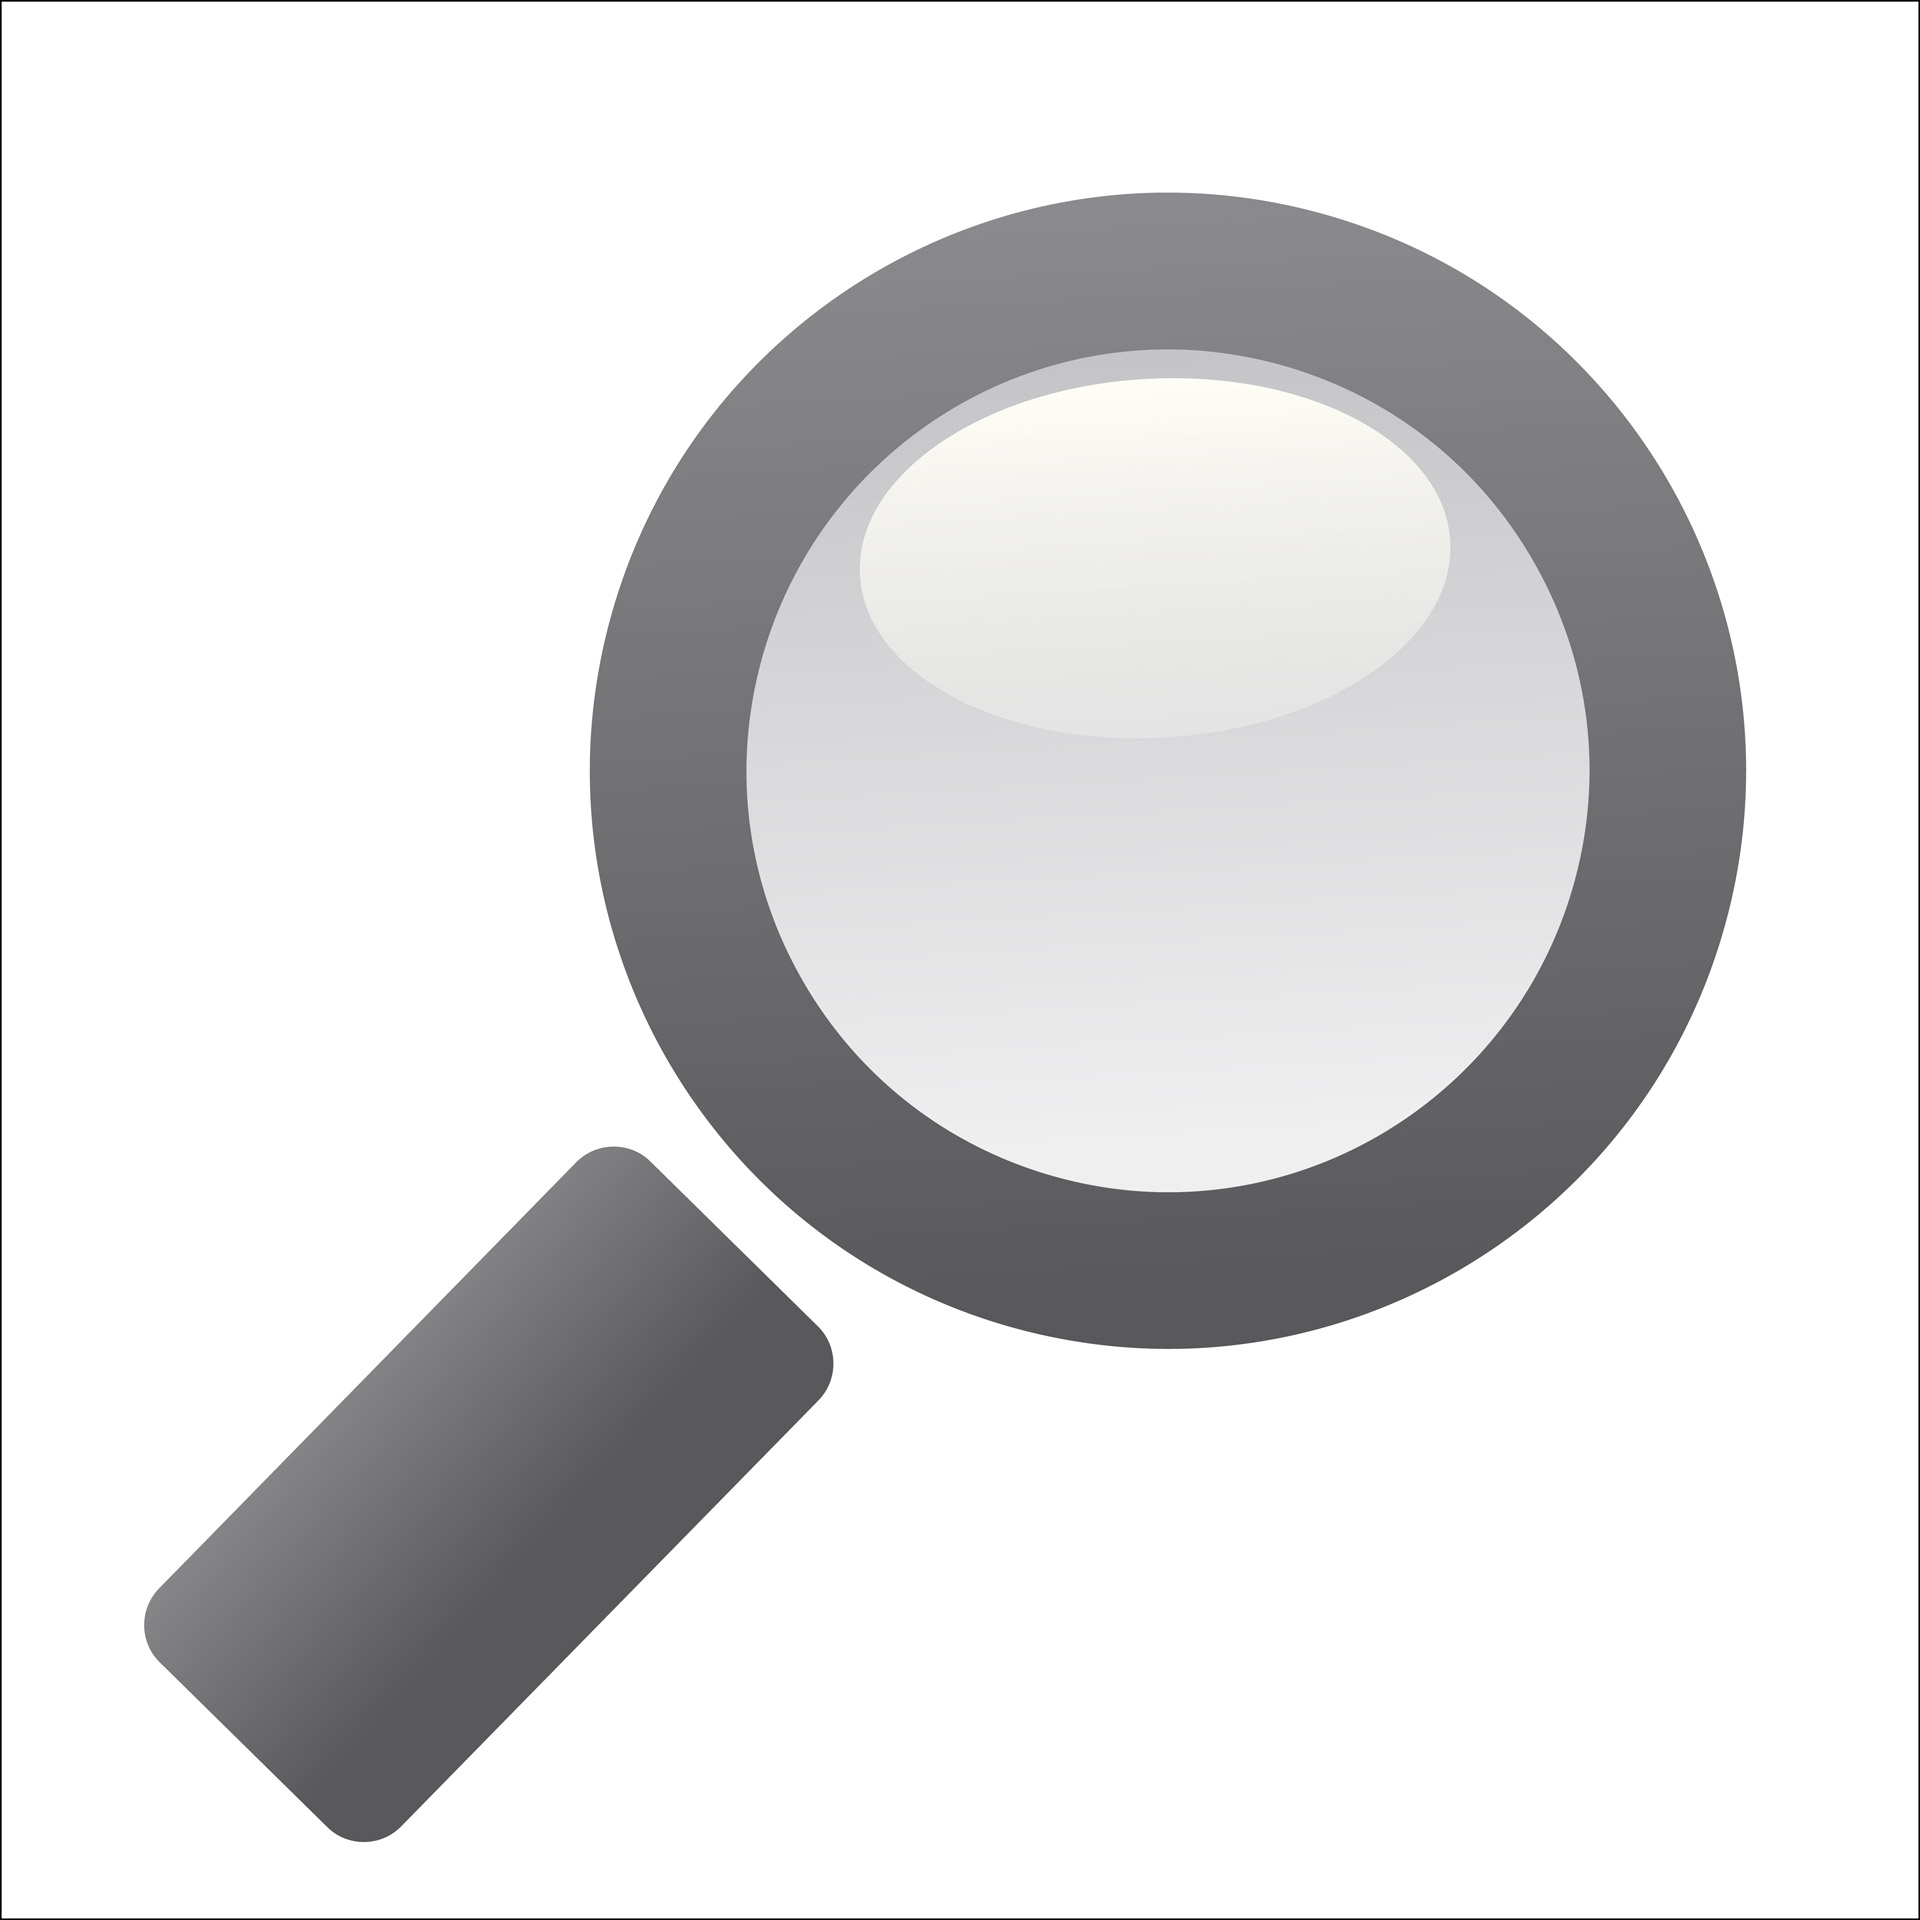 Glass clipart. Magnifying free stock photo